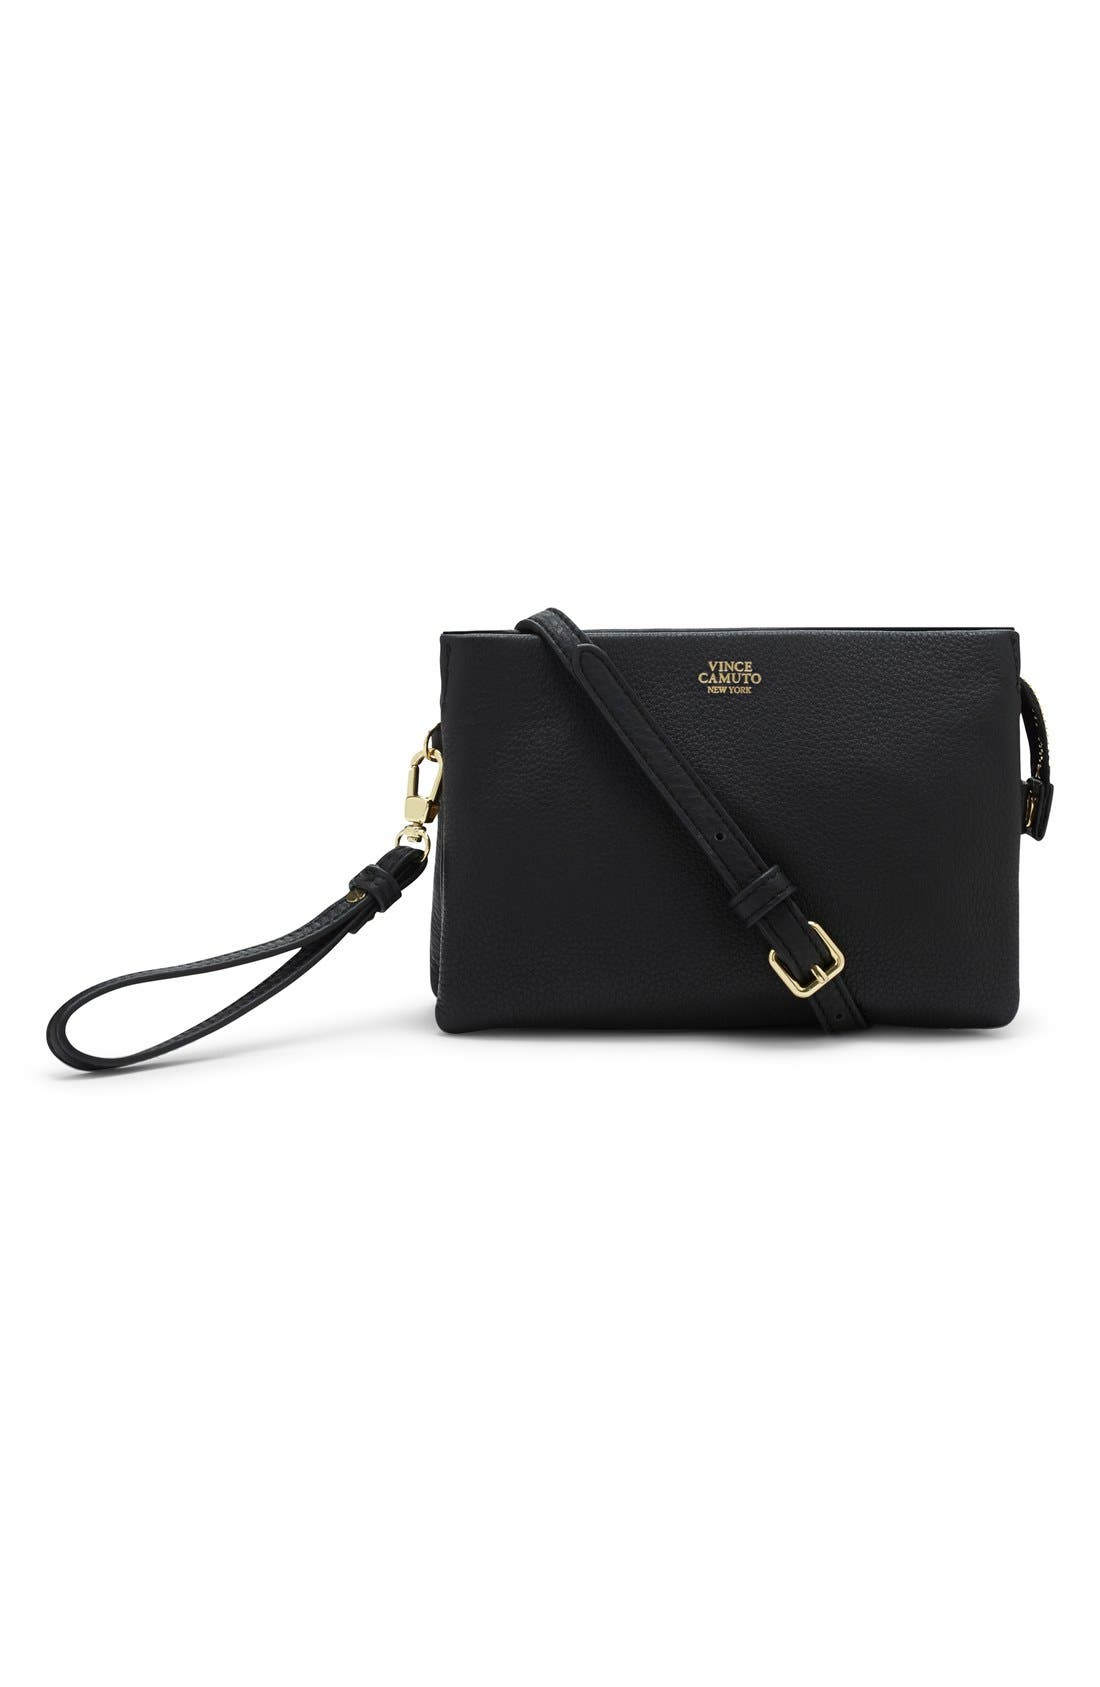 'Cami' Leather Crossbody Bag,                         Main,                         color,